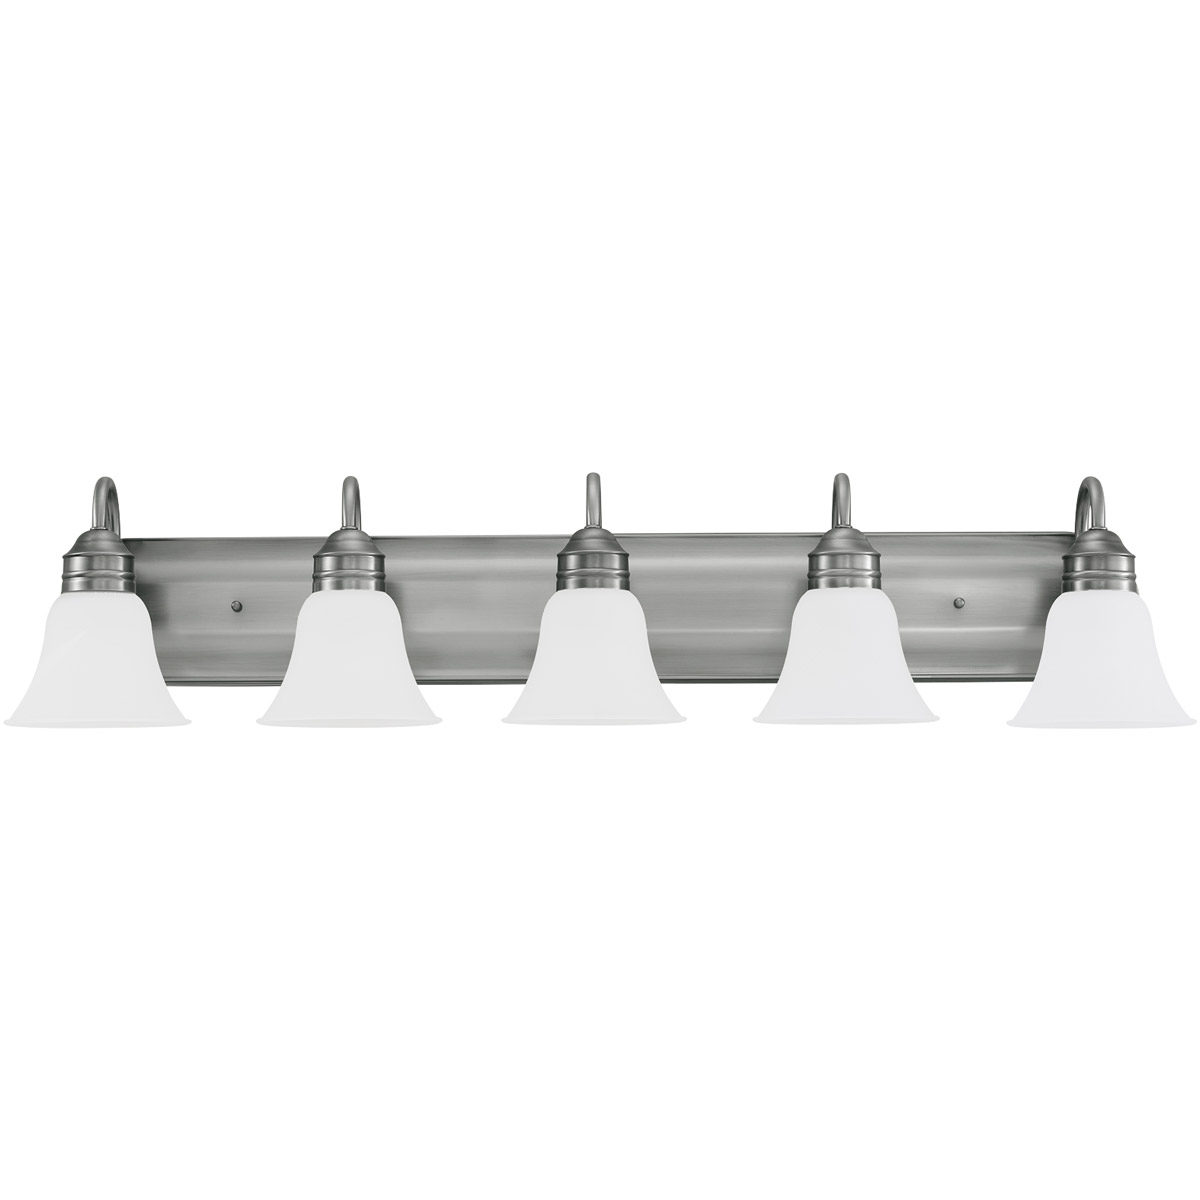 Sea Gull Lighting Gladstone 5 Light Bath Vanity in Antique Brushed Nickel 44854-965